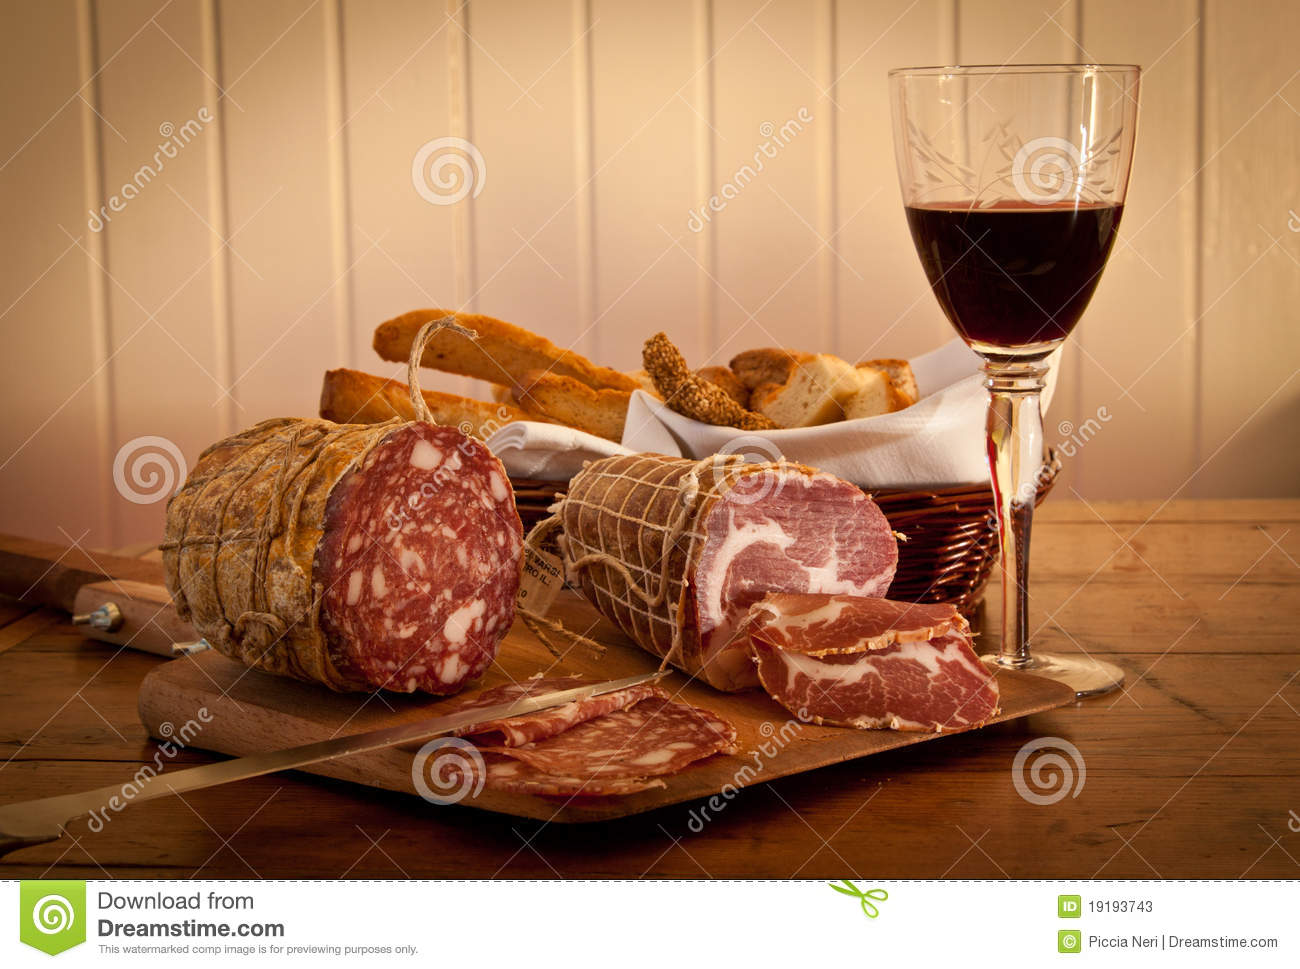 A Glass Of Wine With Salami And Home.